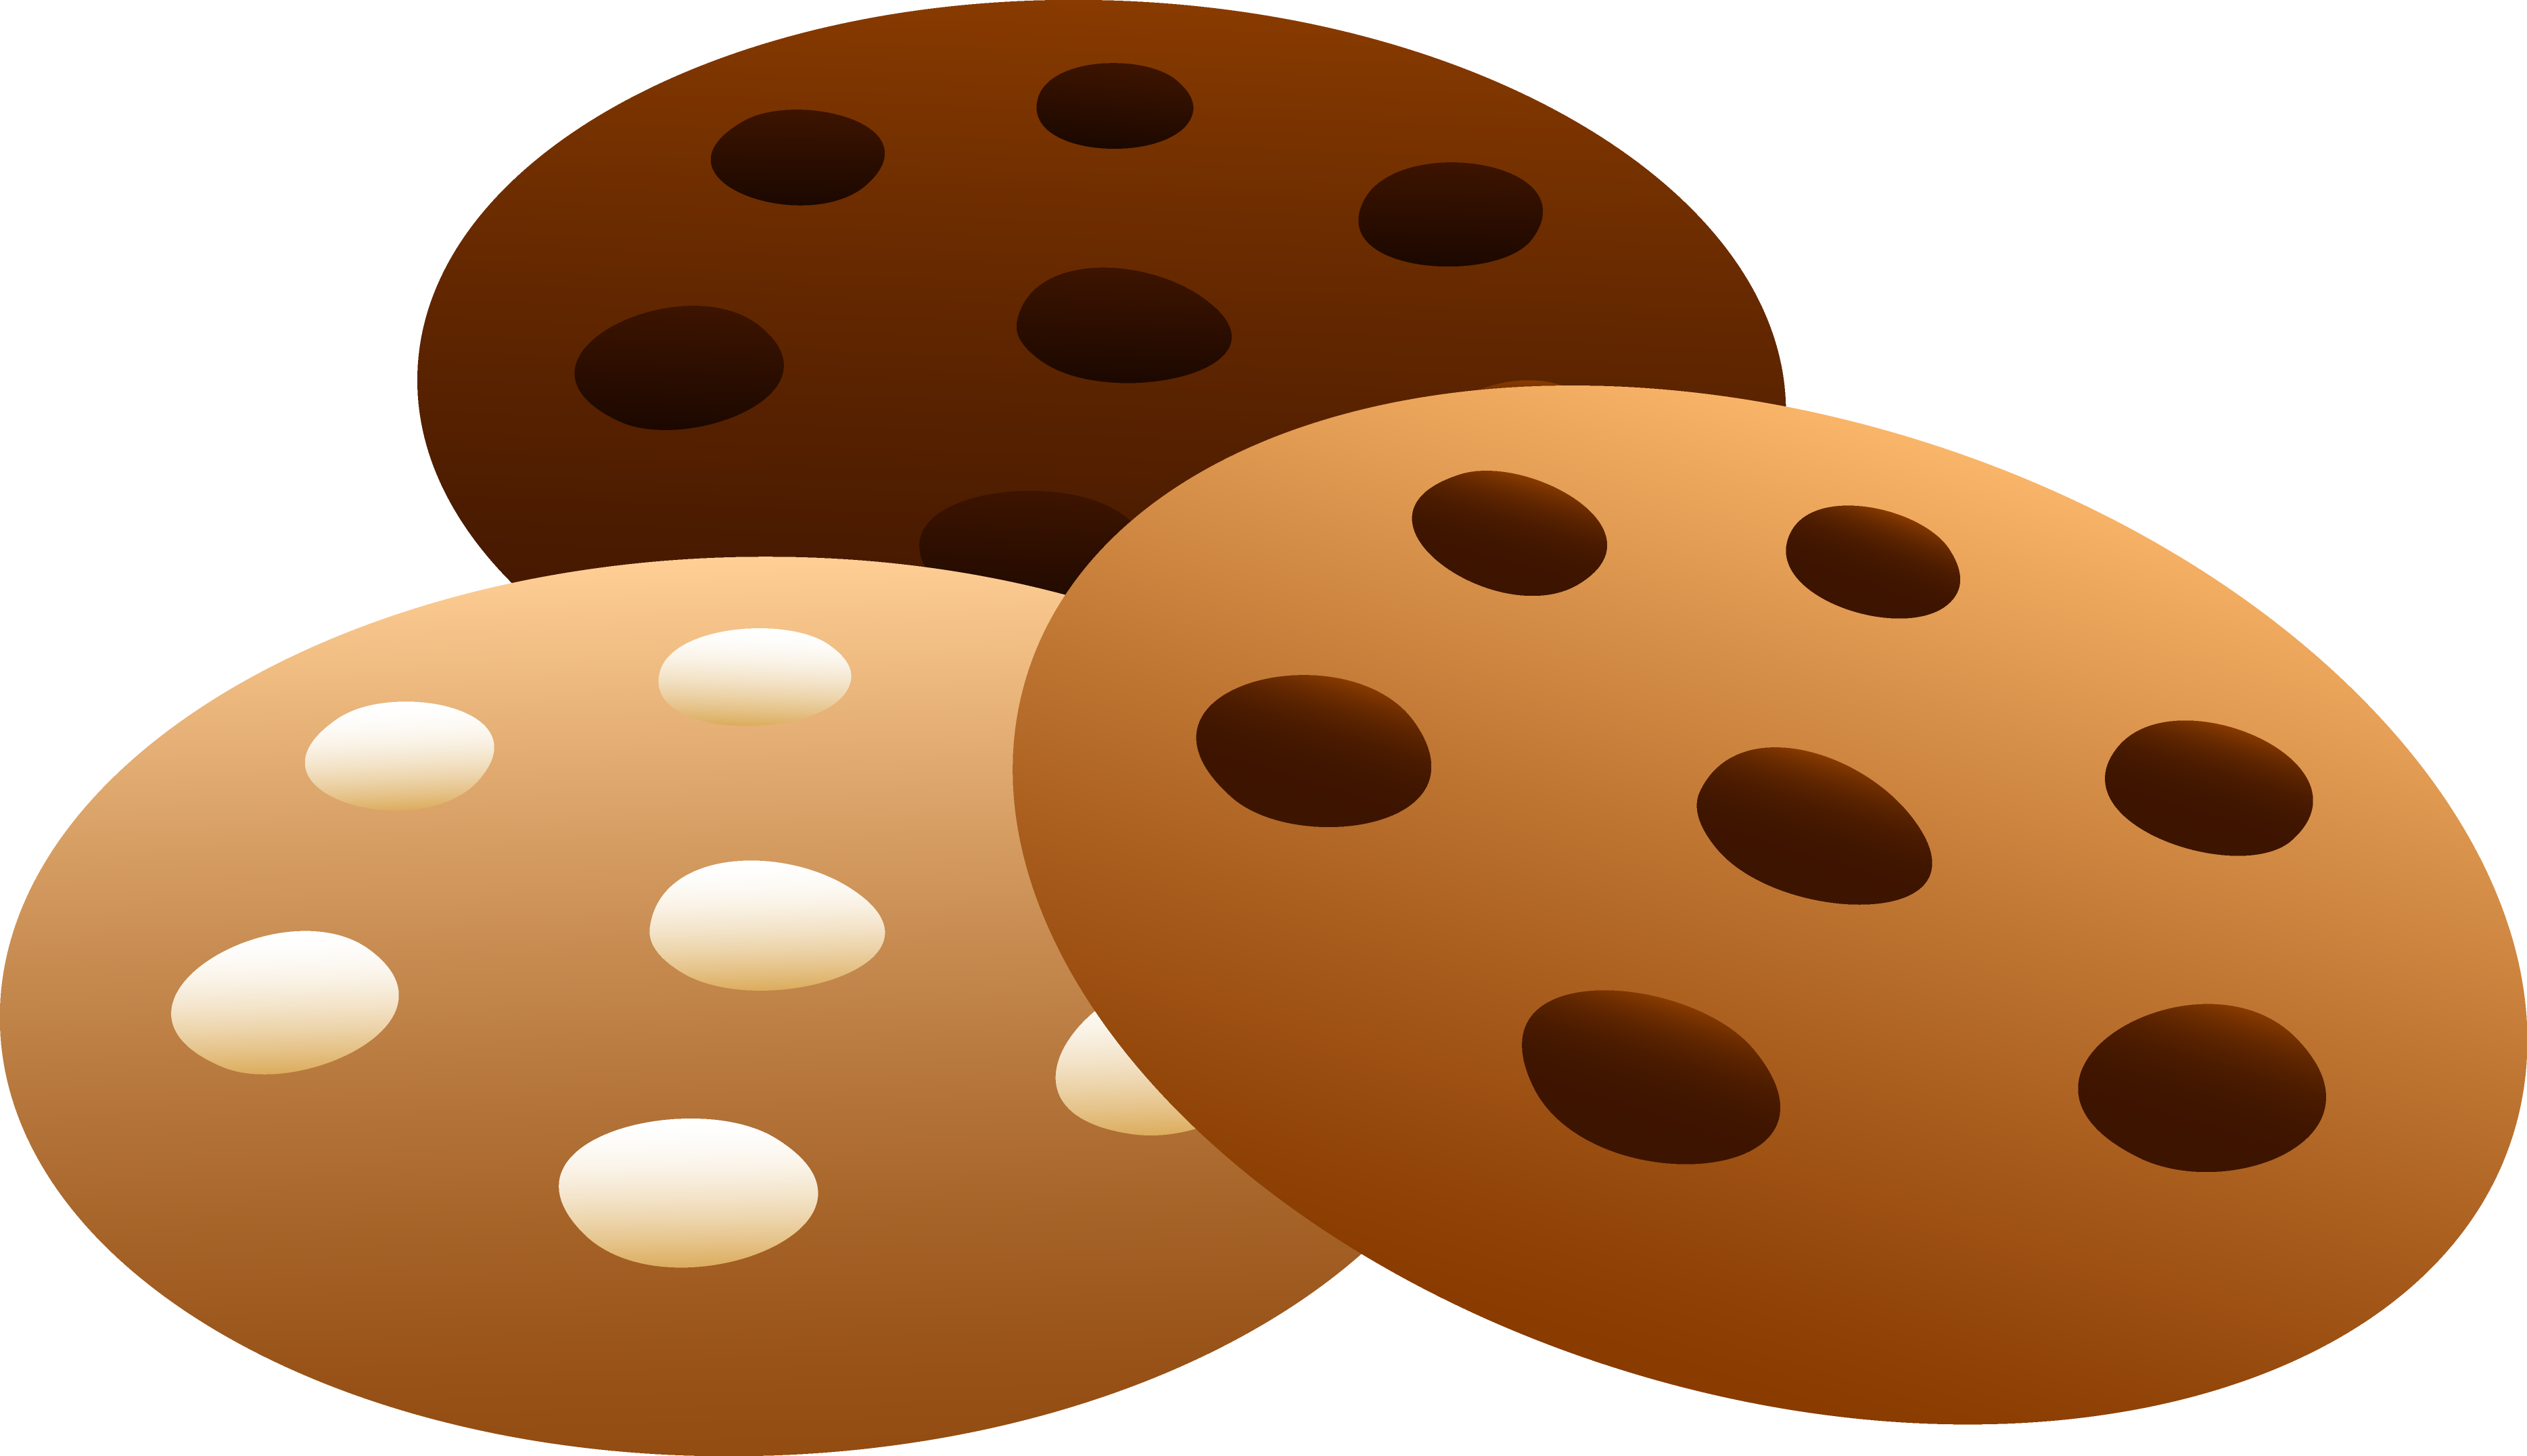 Cookie clipart #10, Download drawings